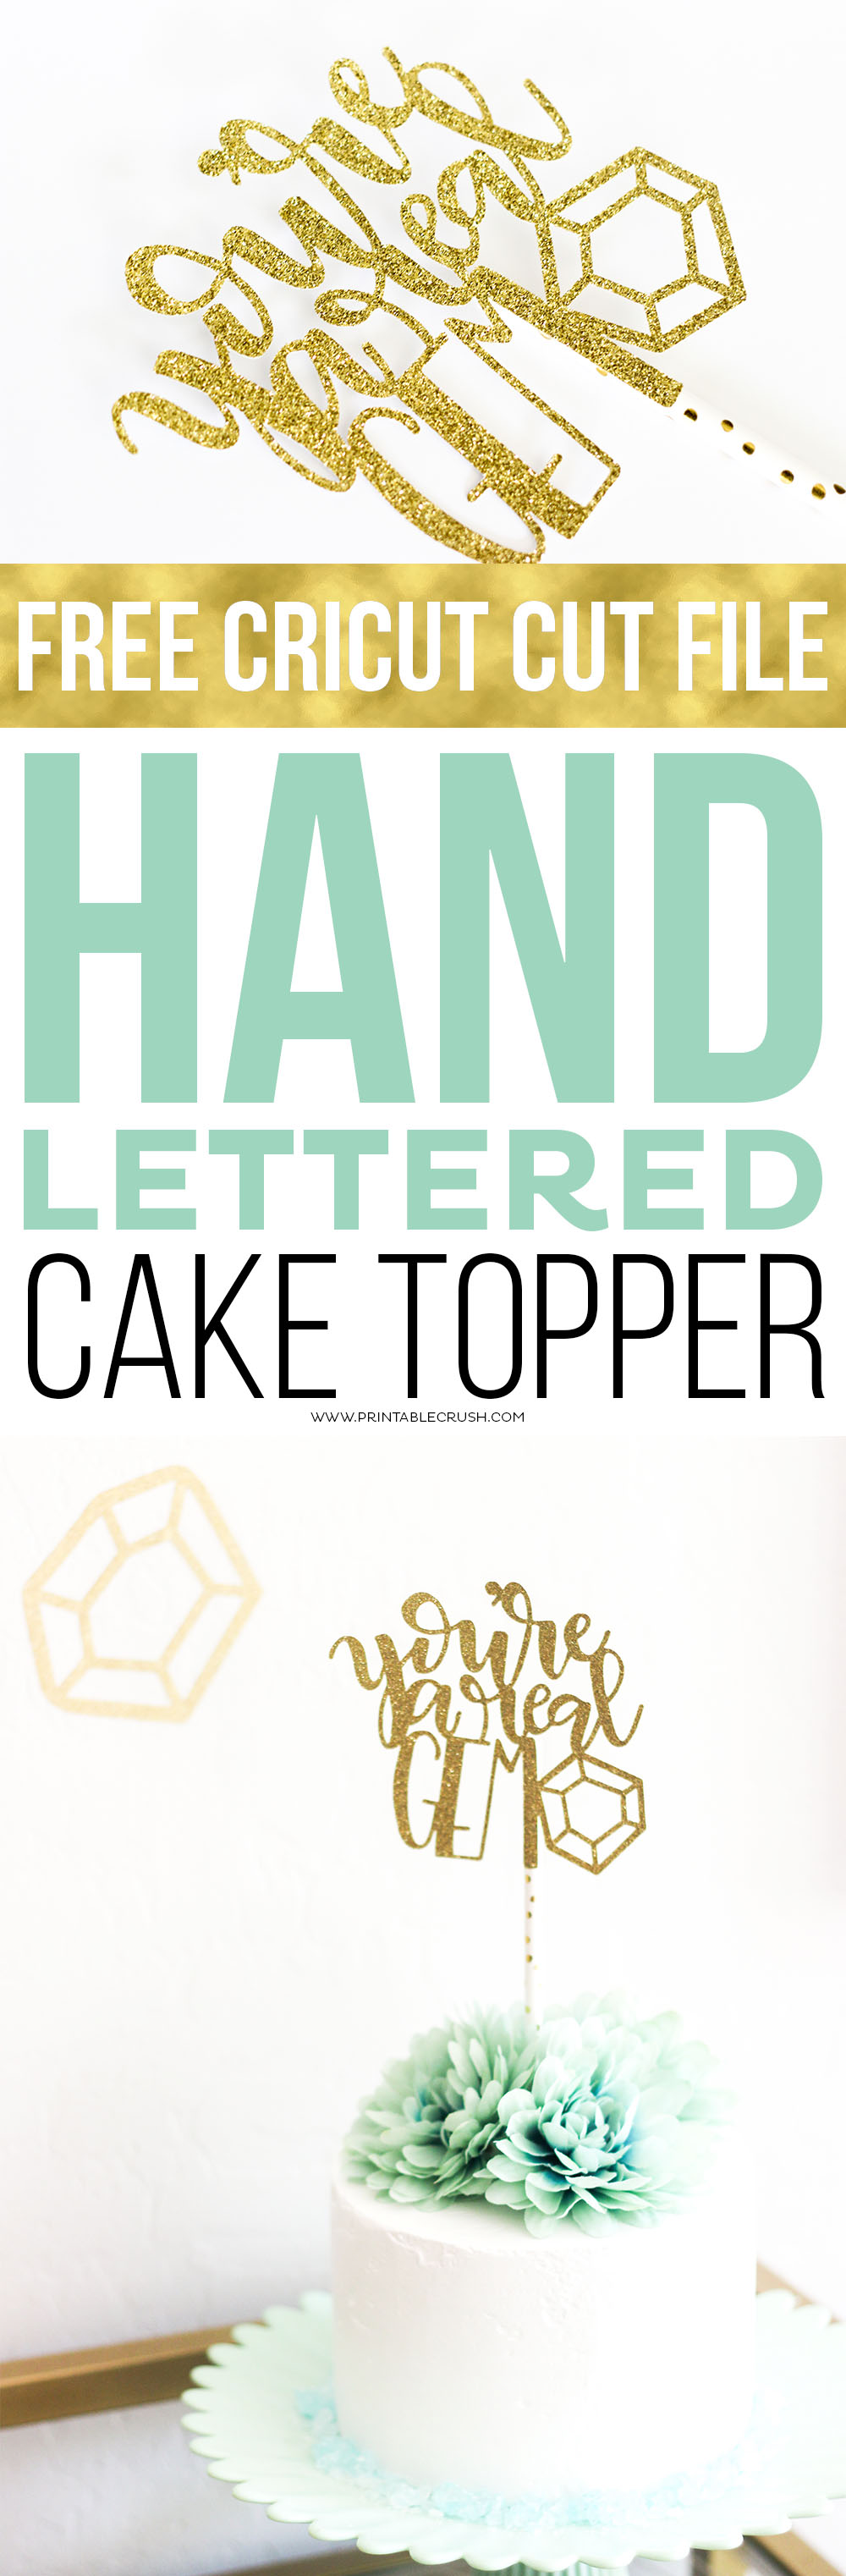 Not a cake decorator? No problem with this Hand Lettered Cake Topper! This FREE Cricut Cut File will make your cake shine!